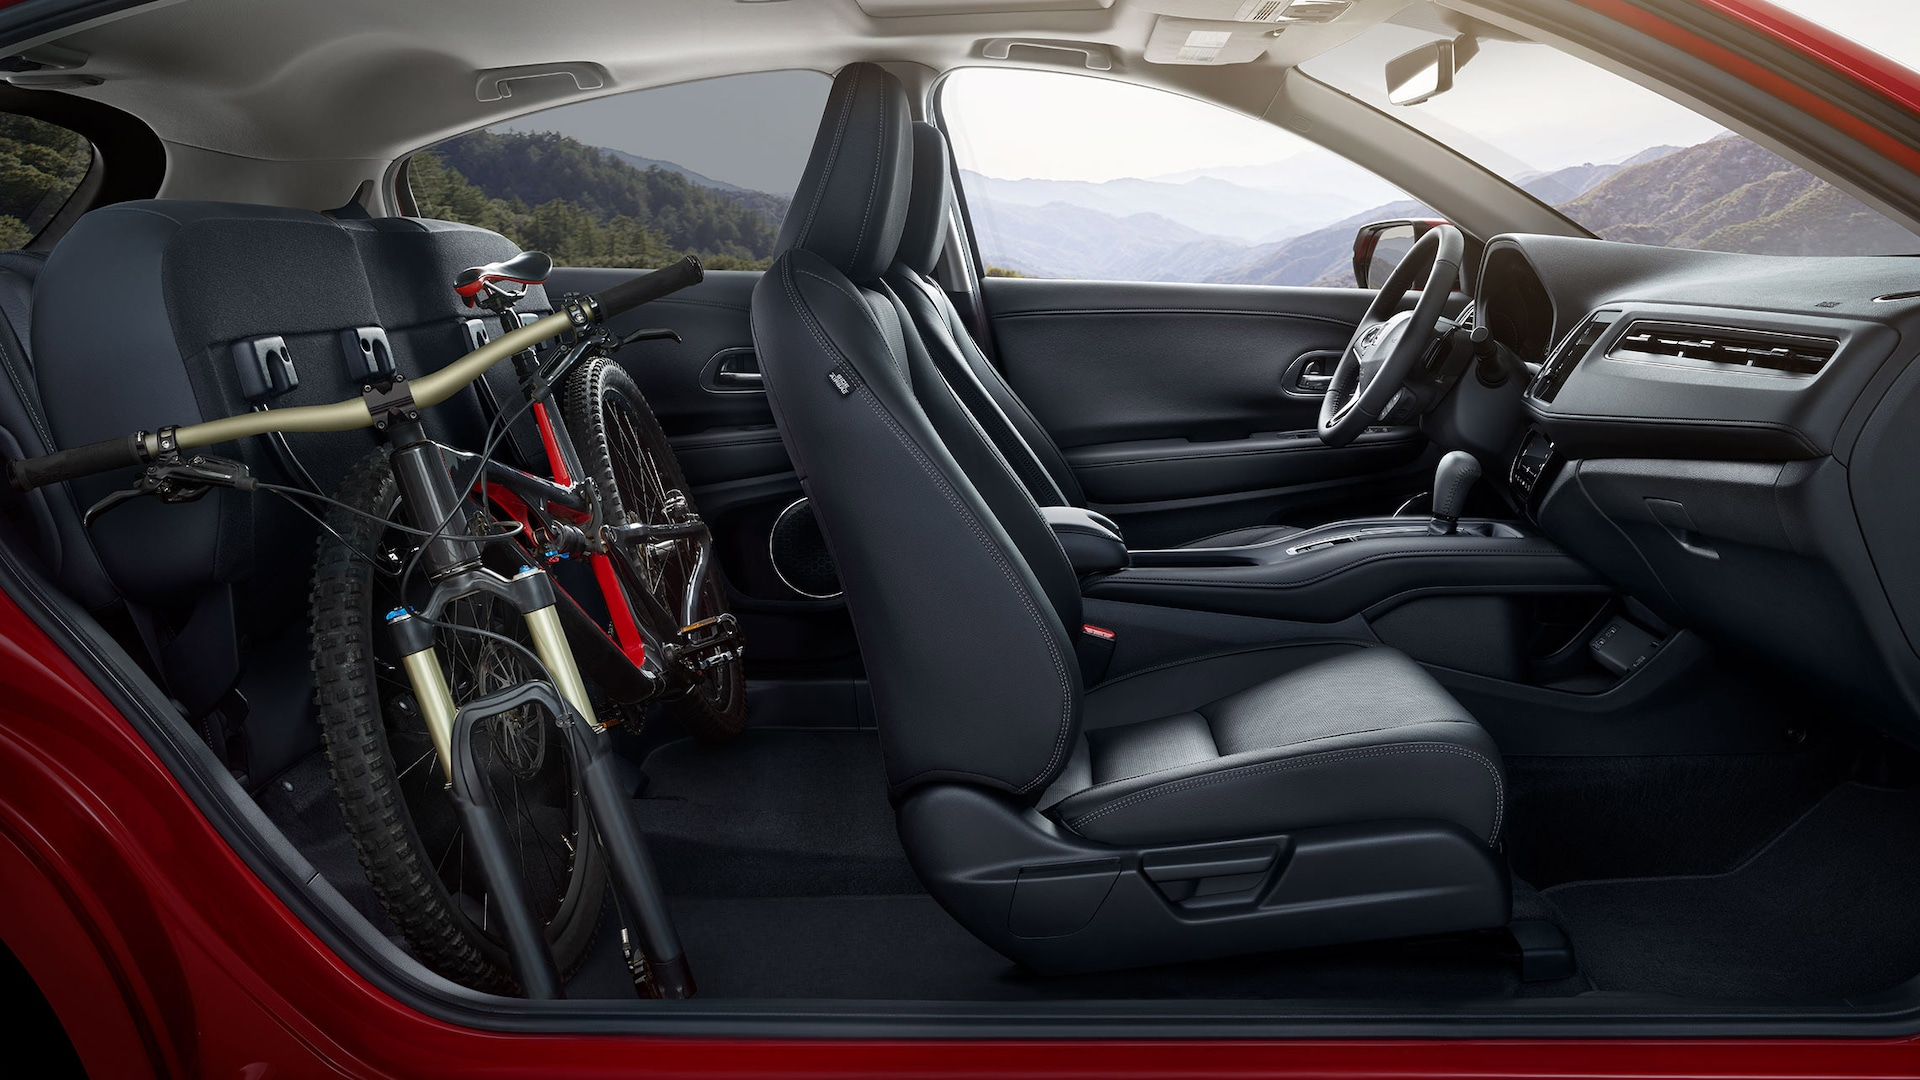 Passenger's side interior view of the 2019 Honda HR-V Touring in Black Leather with folded rear seats stowing a bike.